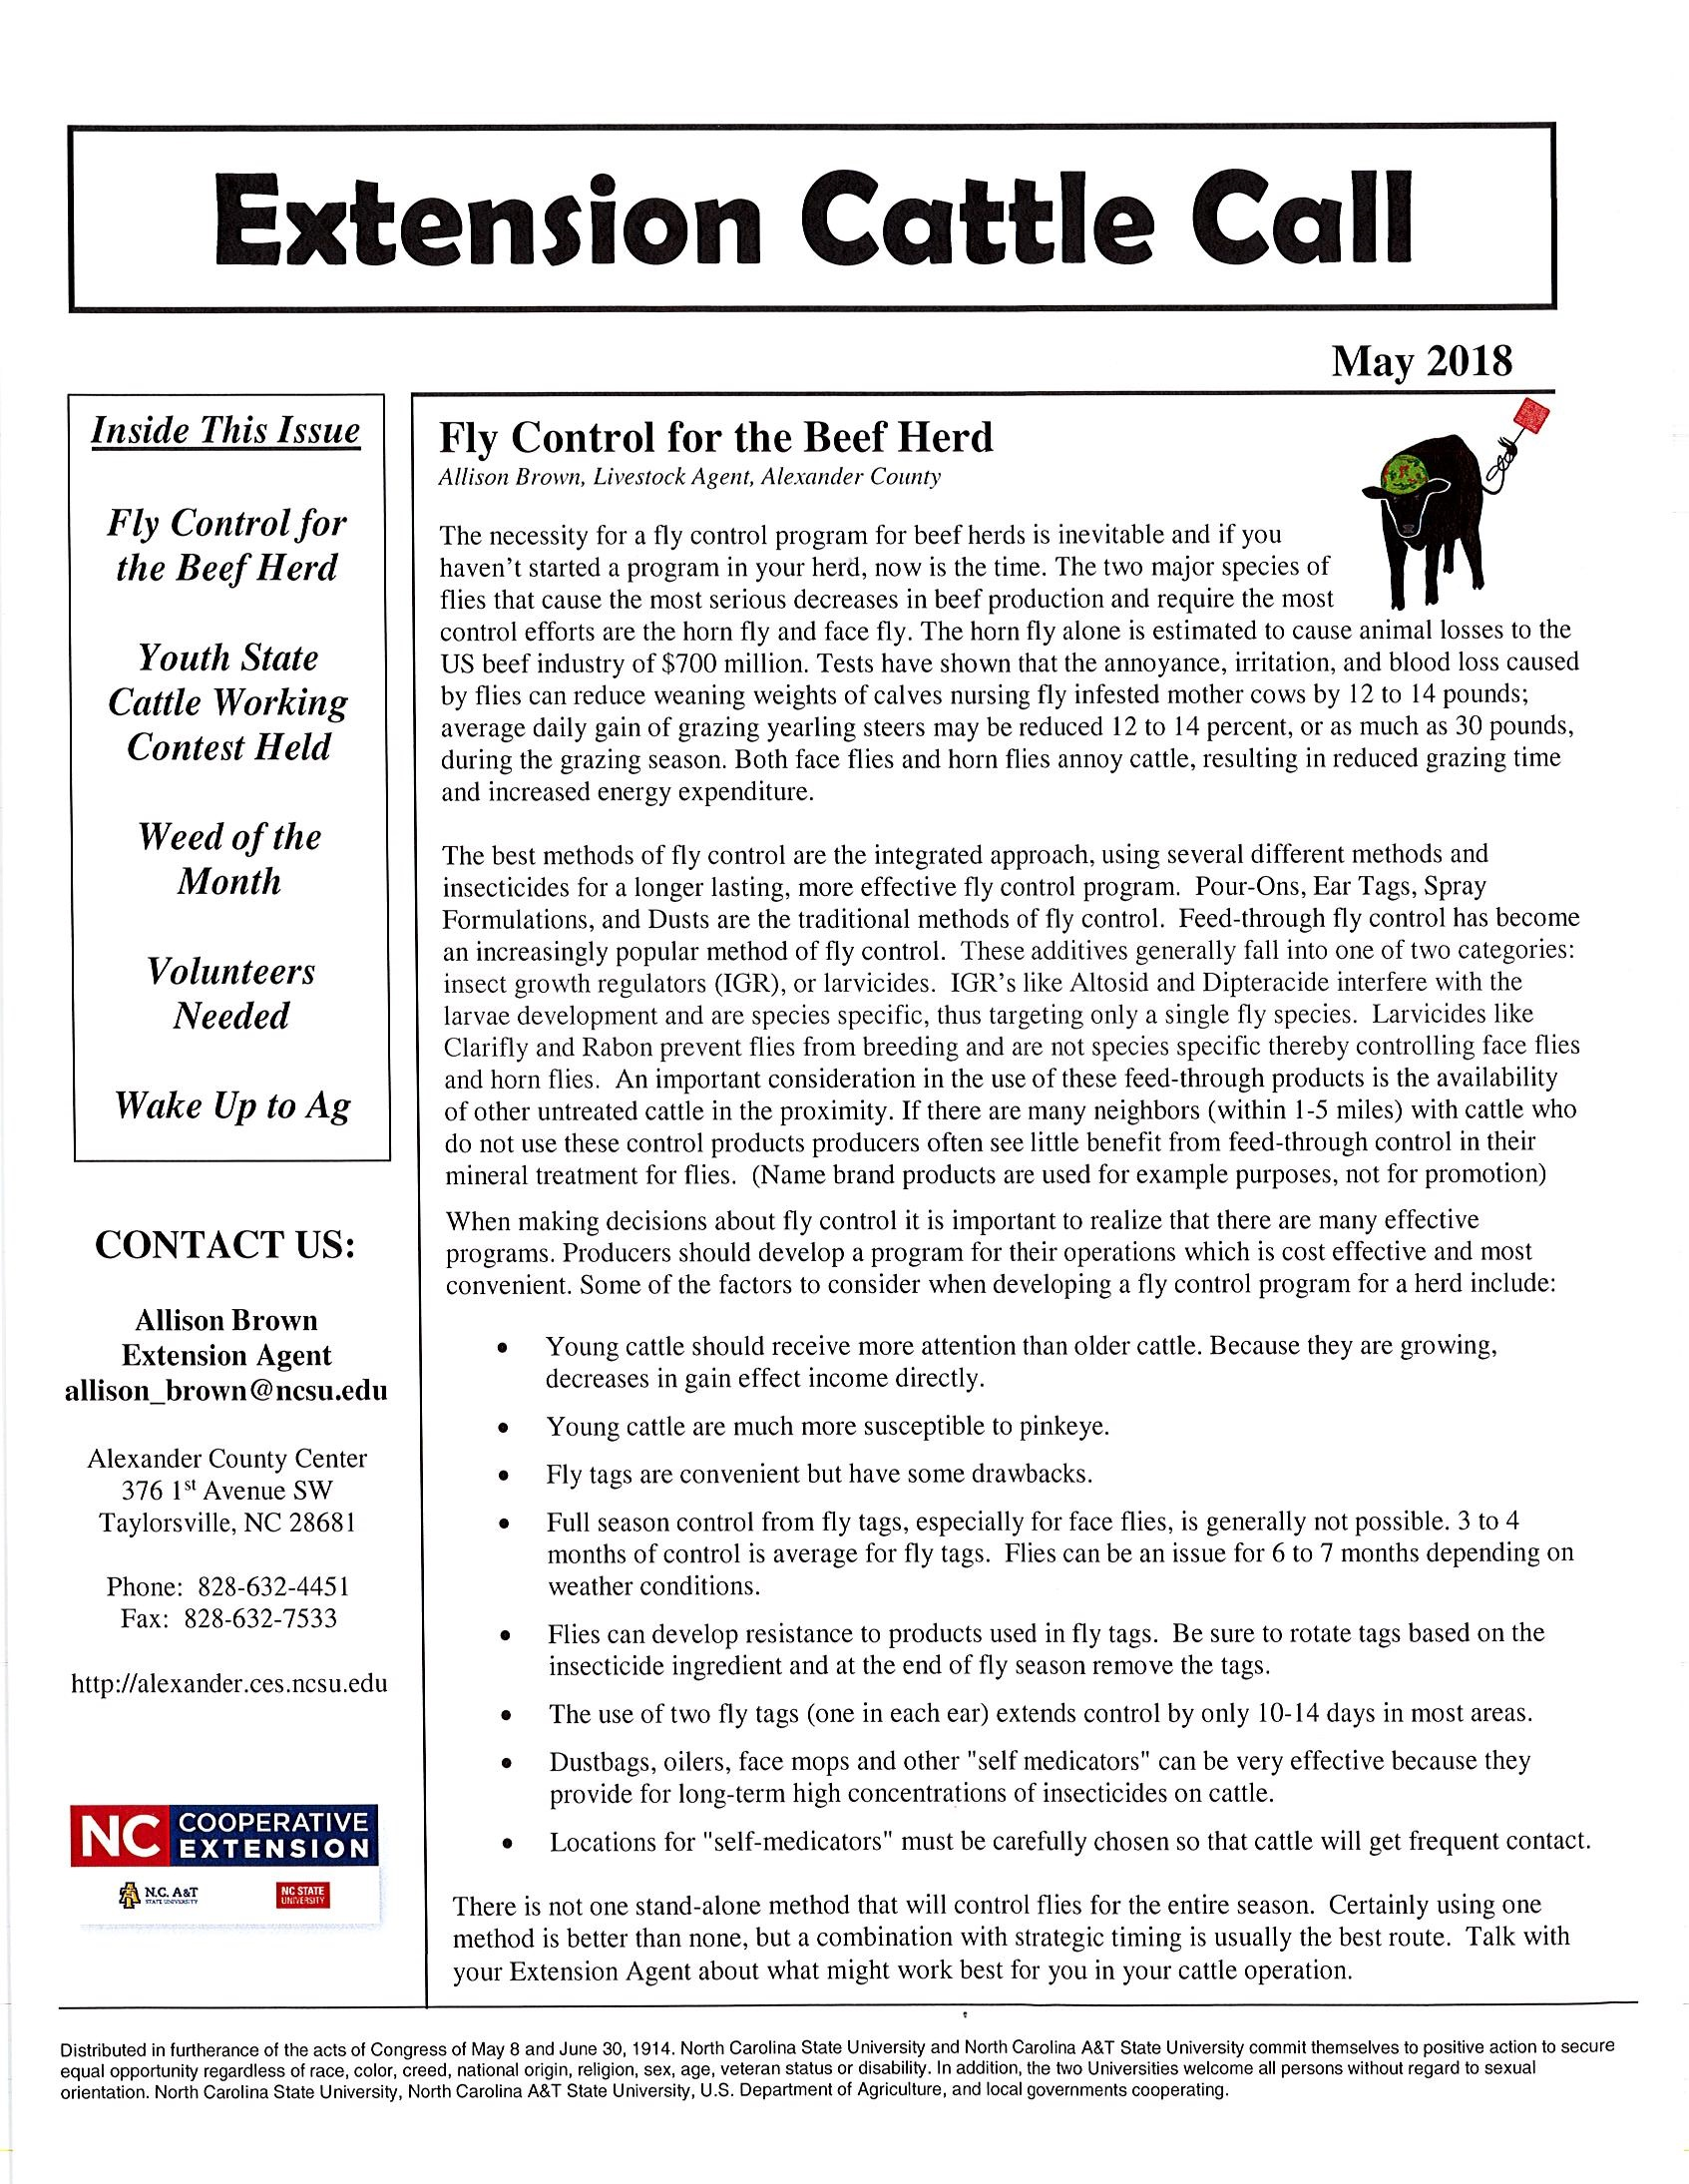 Cattle Call newsletter image 1